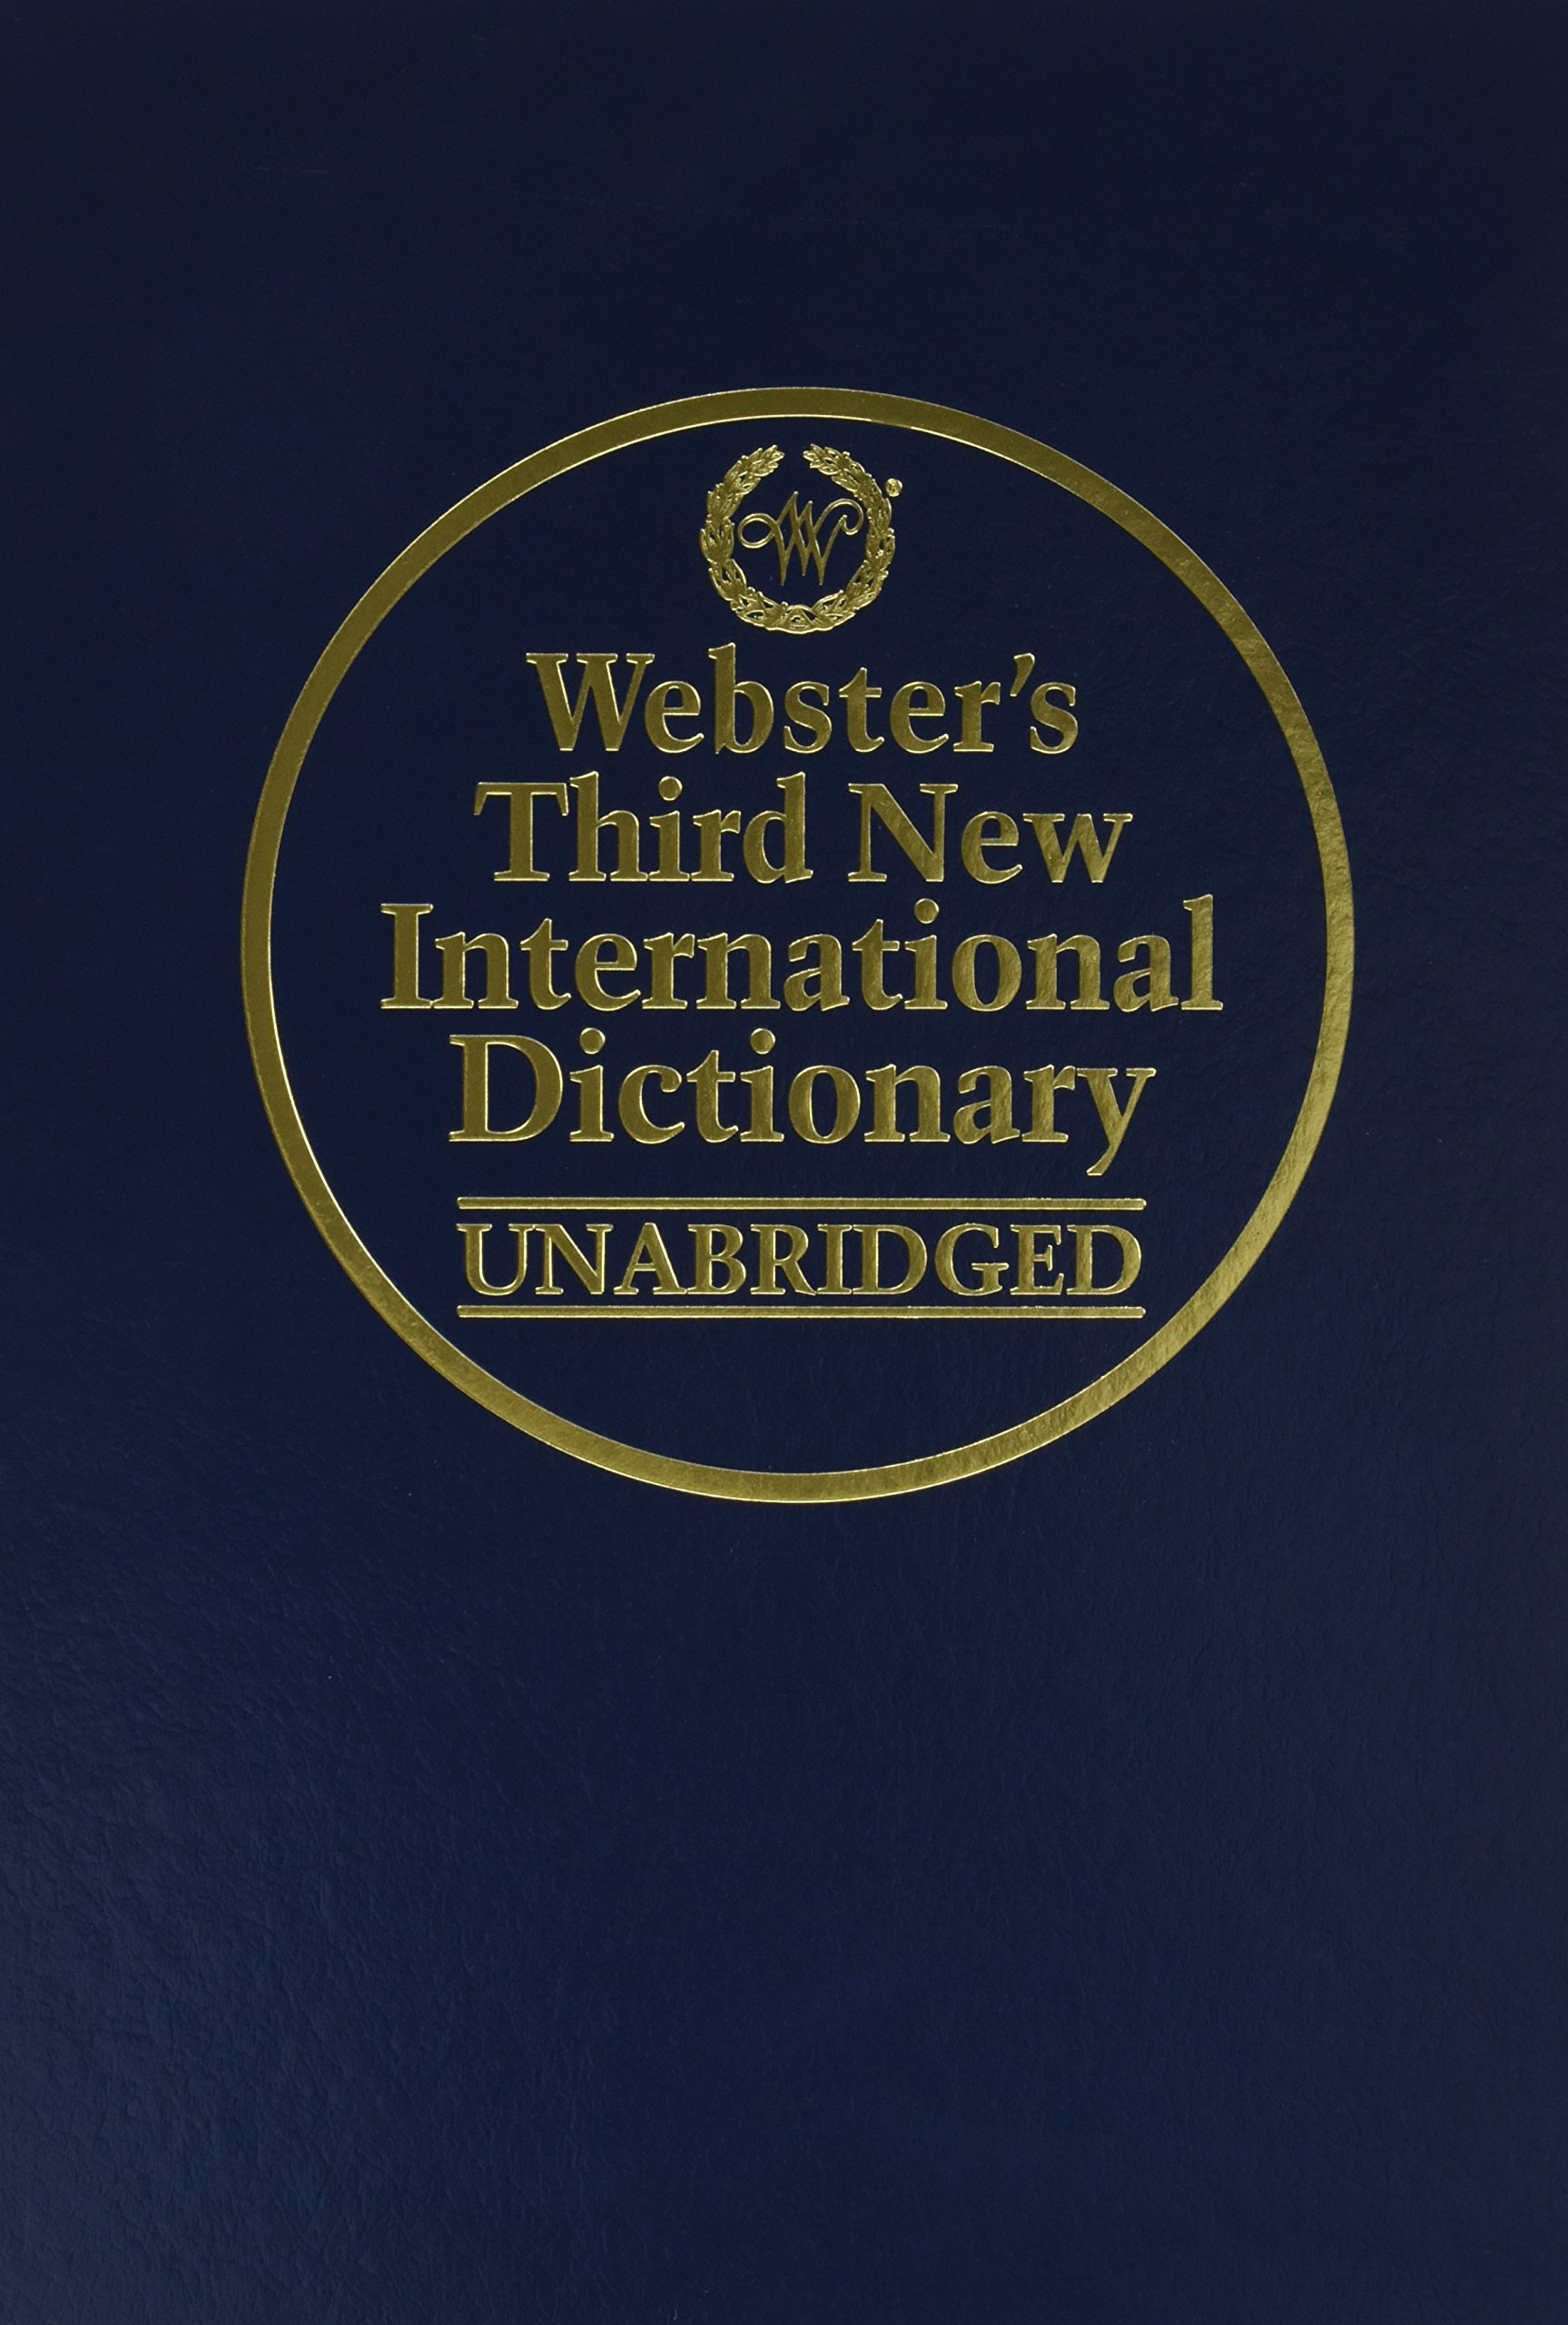 Webster's Third New International Dictionary, Unabridged Hardcover – Unabridged, Jan 1 1961 Inc. Merriam-Webster Merriam-Webster Inc. 0877792011 ISBN-13: 978-0-87779-201-7